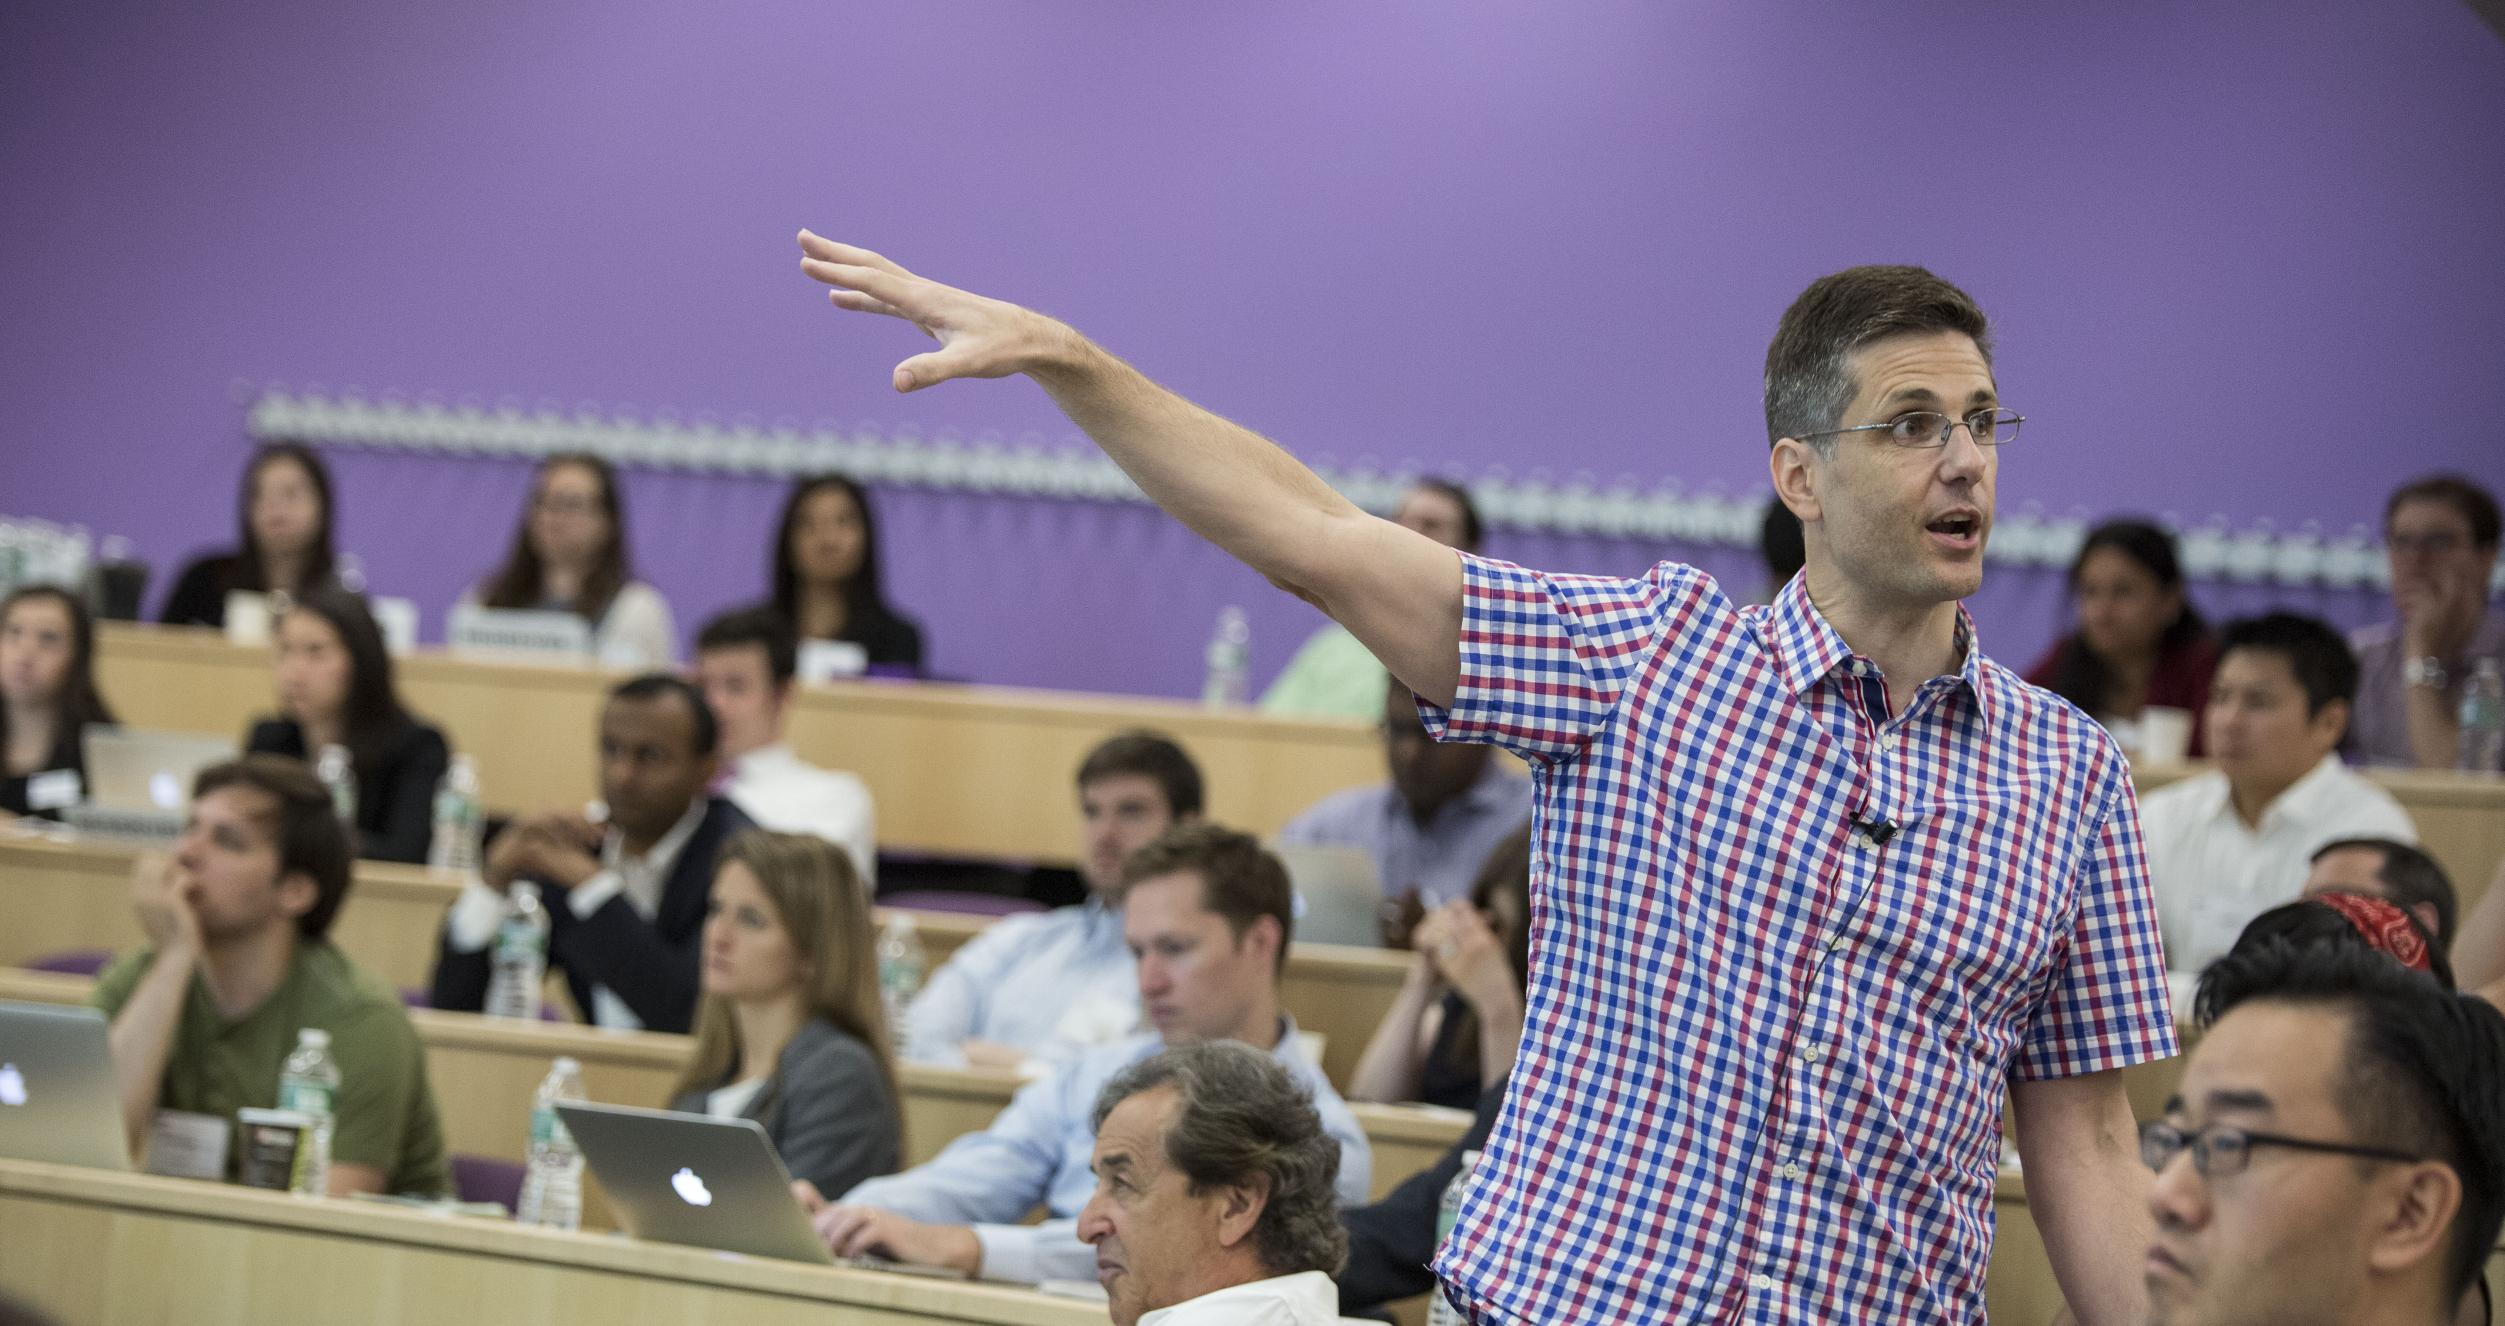 JP Eggers, Dean of MBA Programs, lectures in a classroom